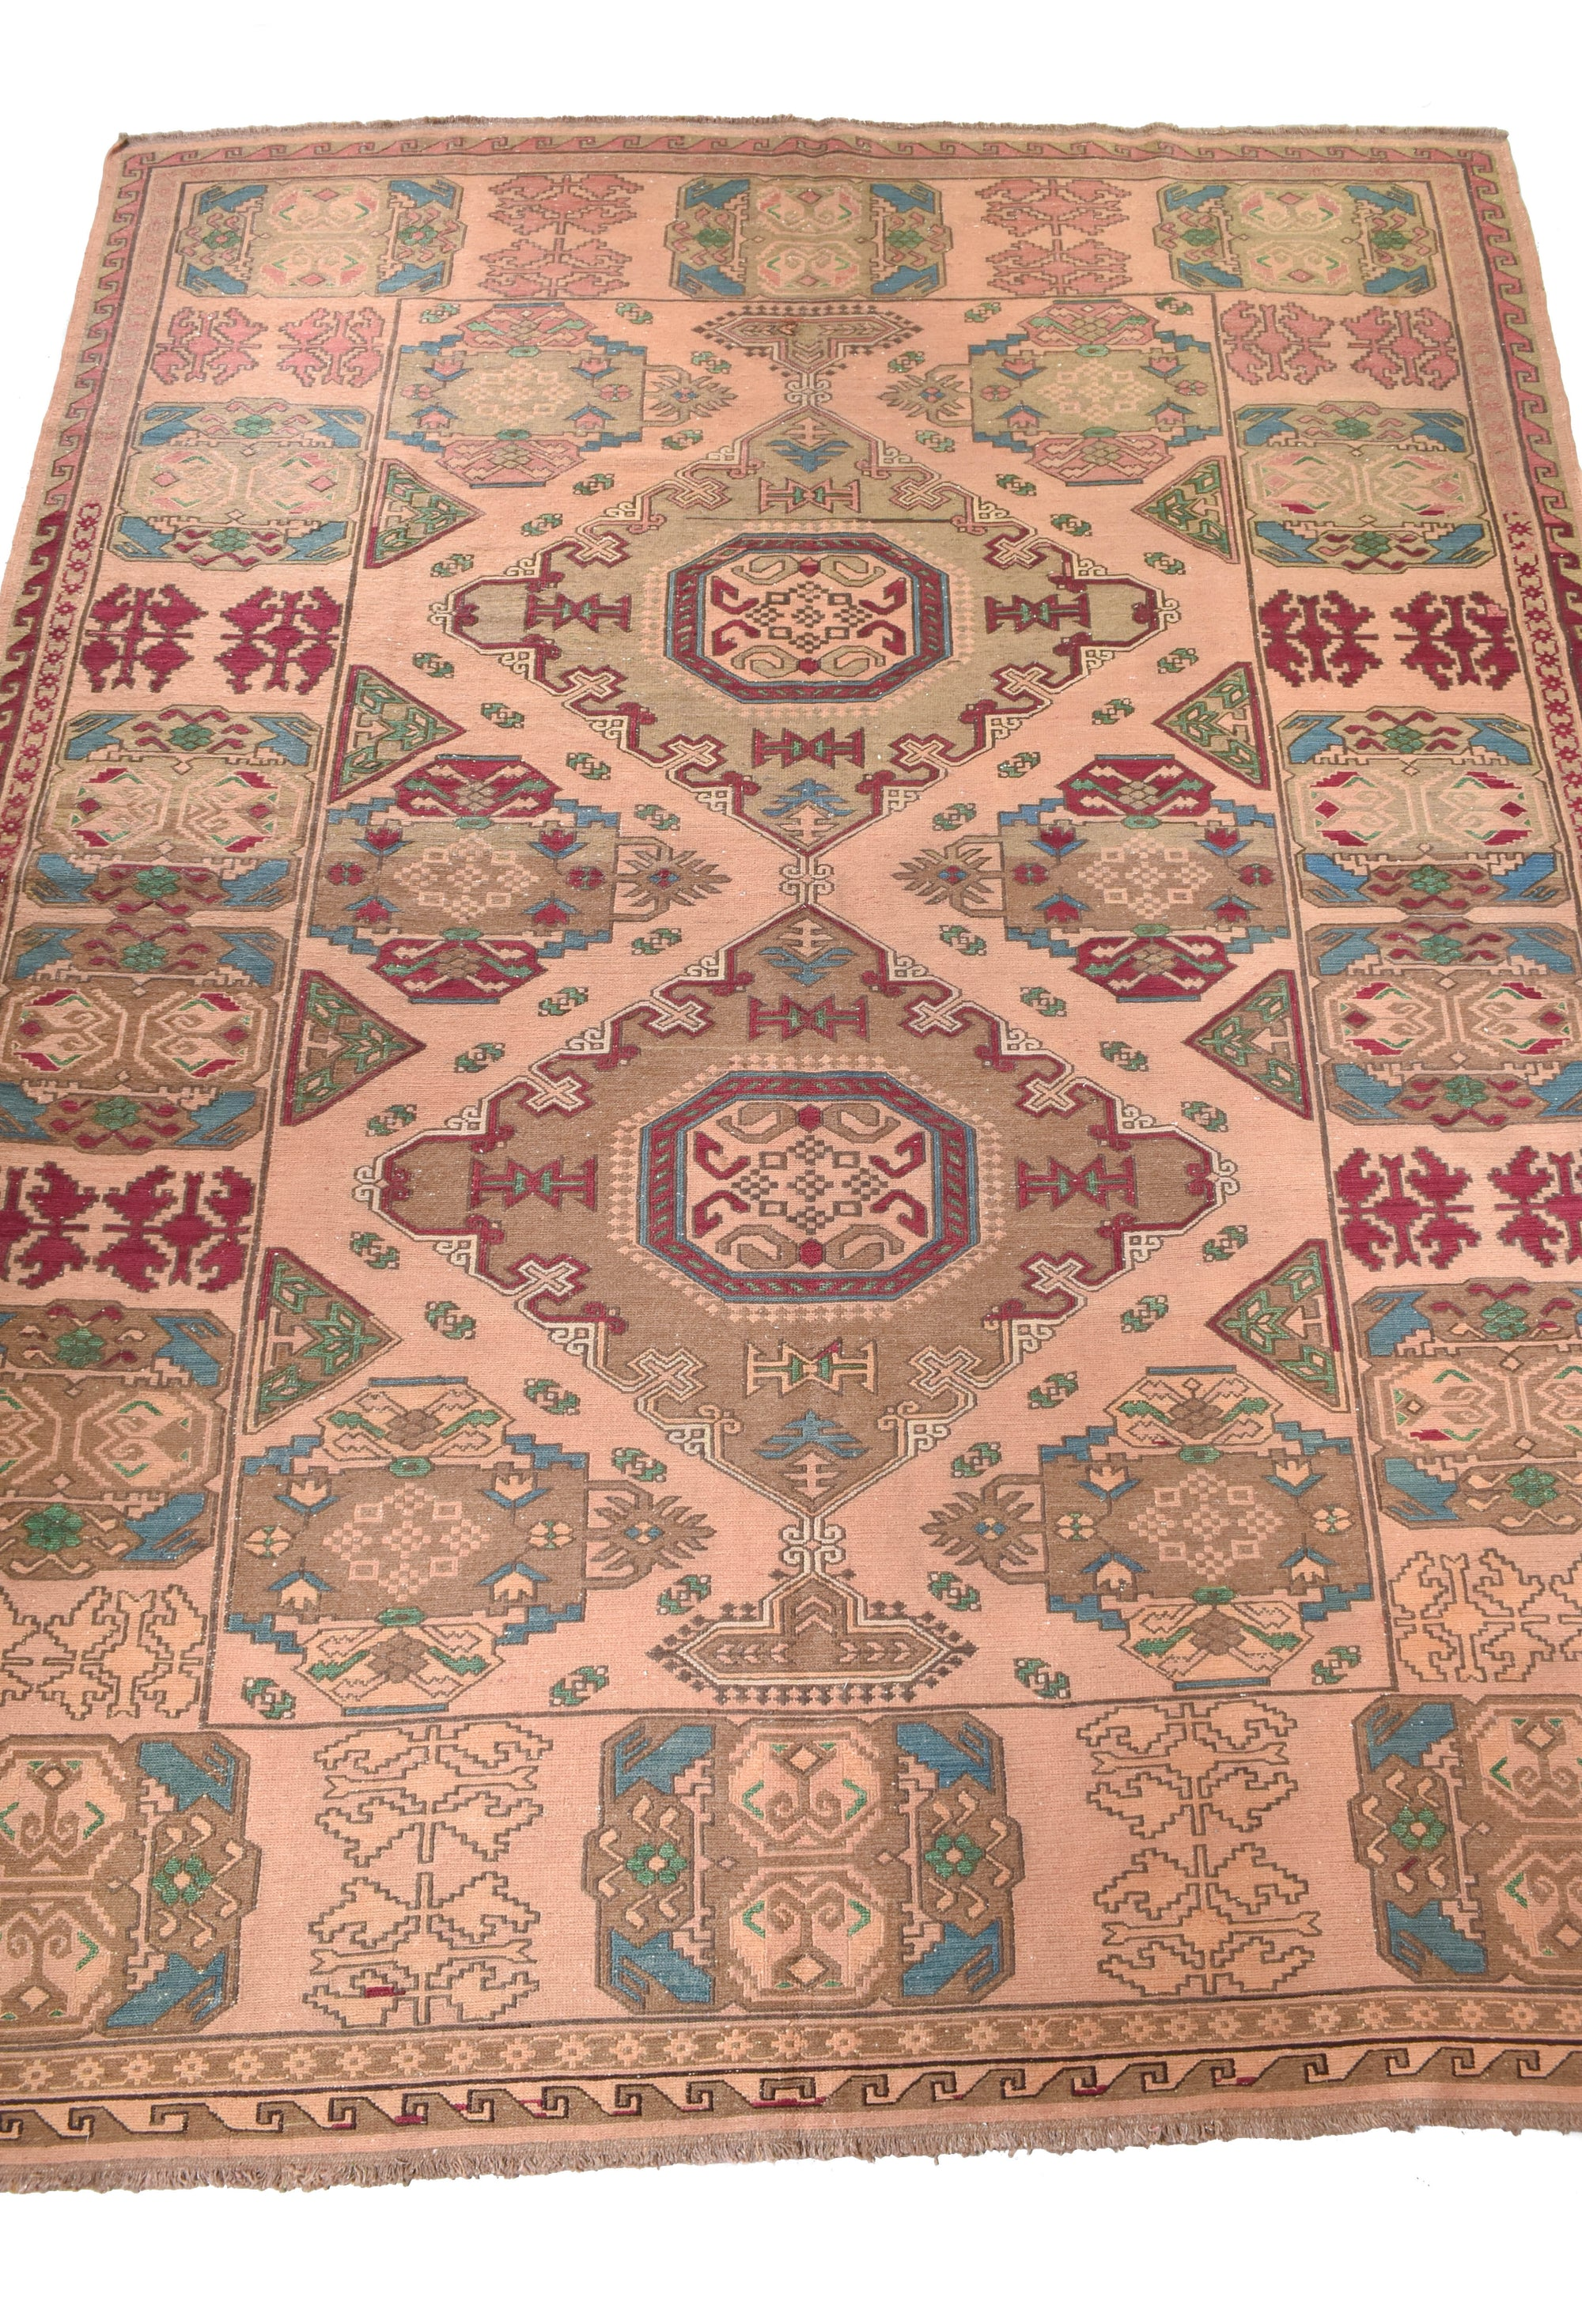 "Soumak antique rug 8'6"" x 10'8"" - Rug & Weave"